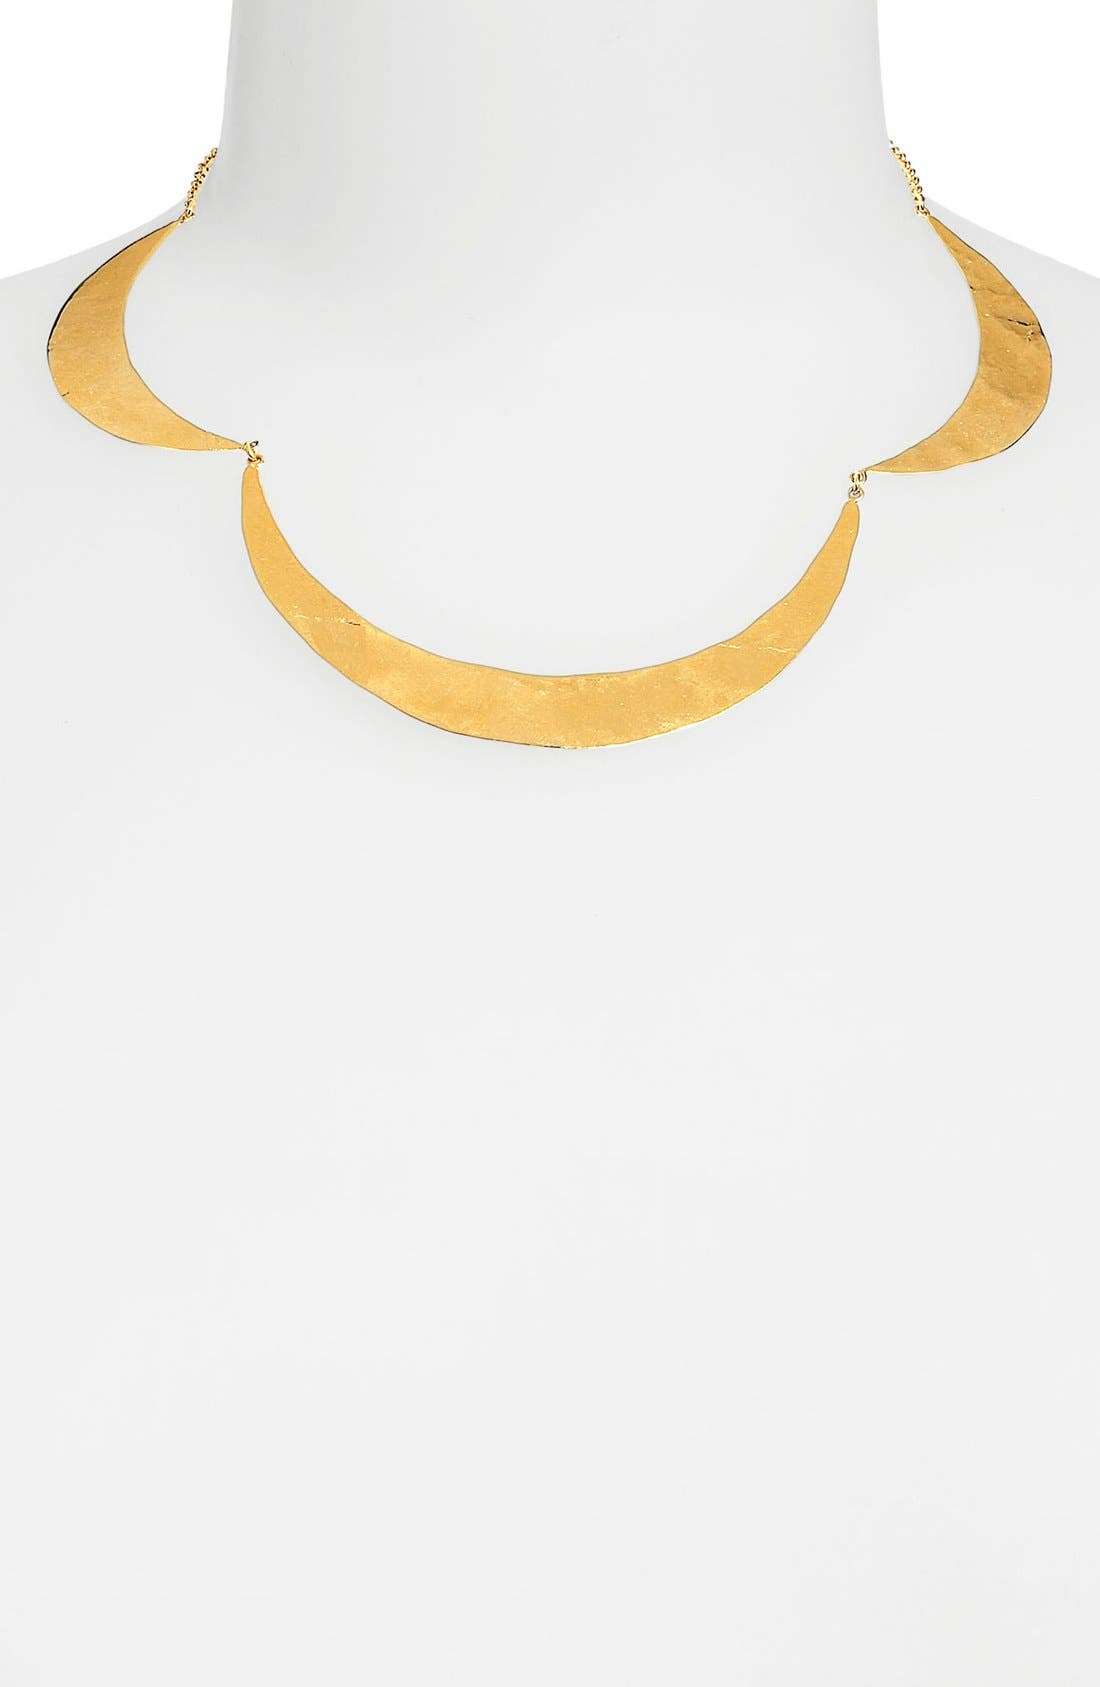 Alternate Image 1 Selected - Argento Vivo Hammered Crescent Collar Necklace